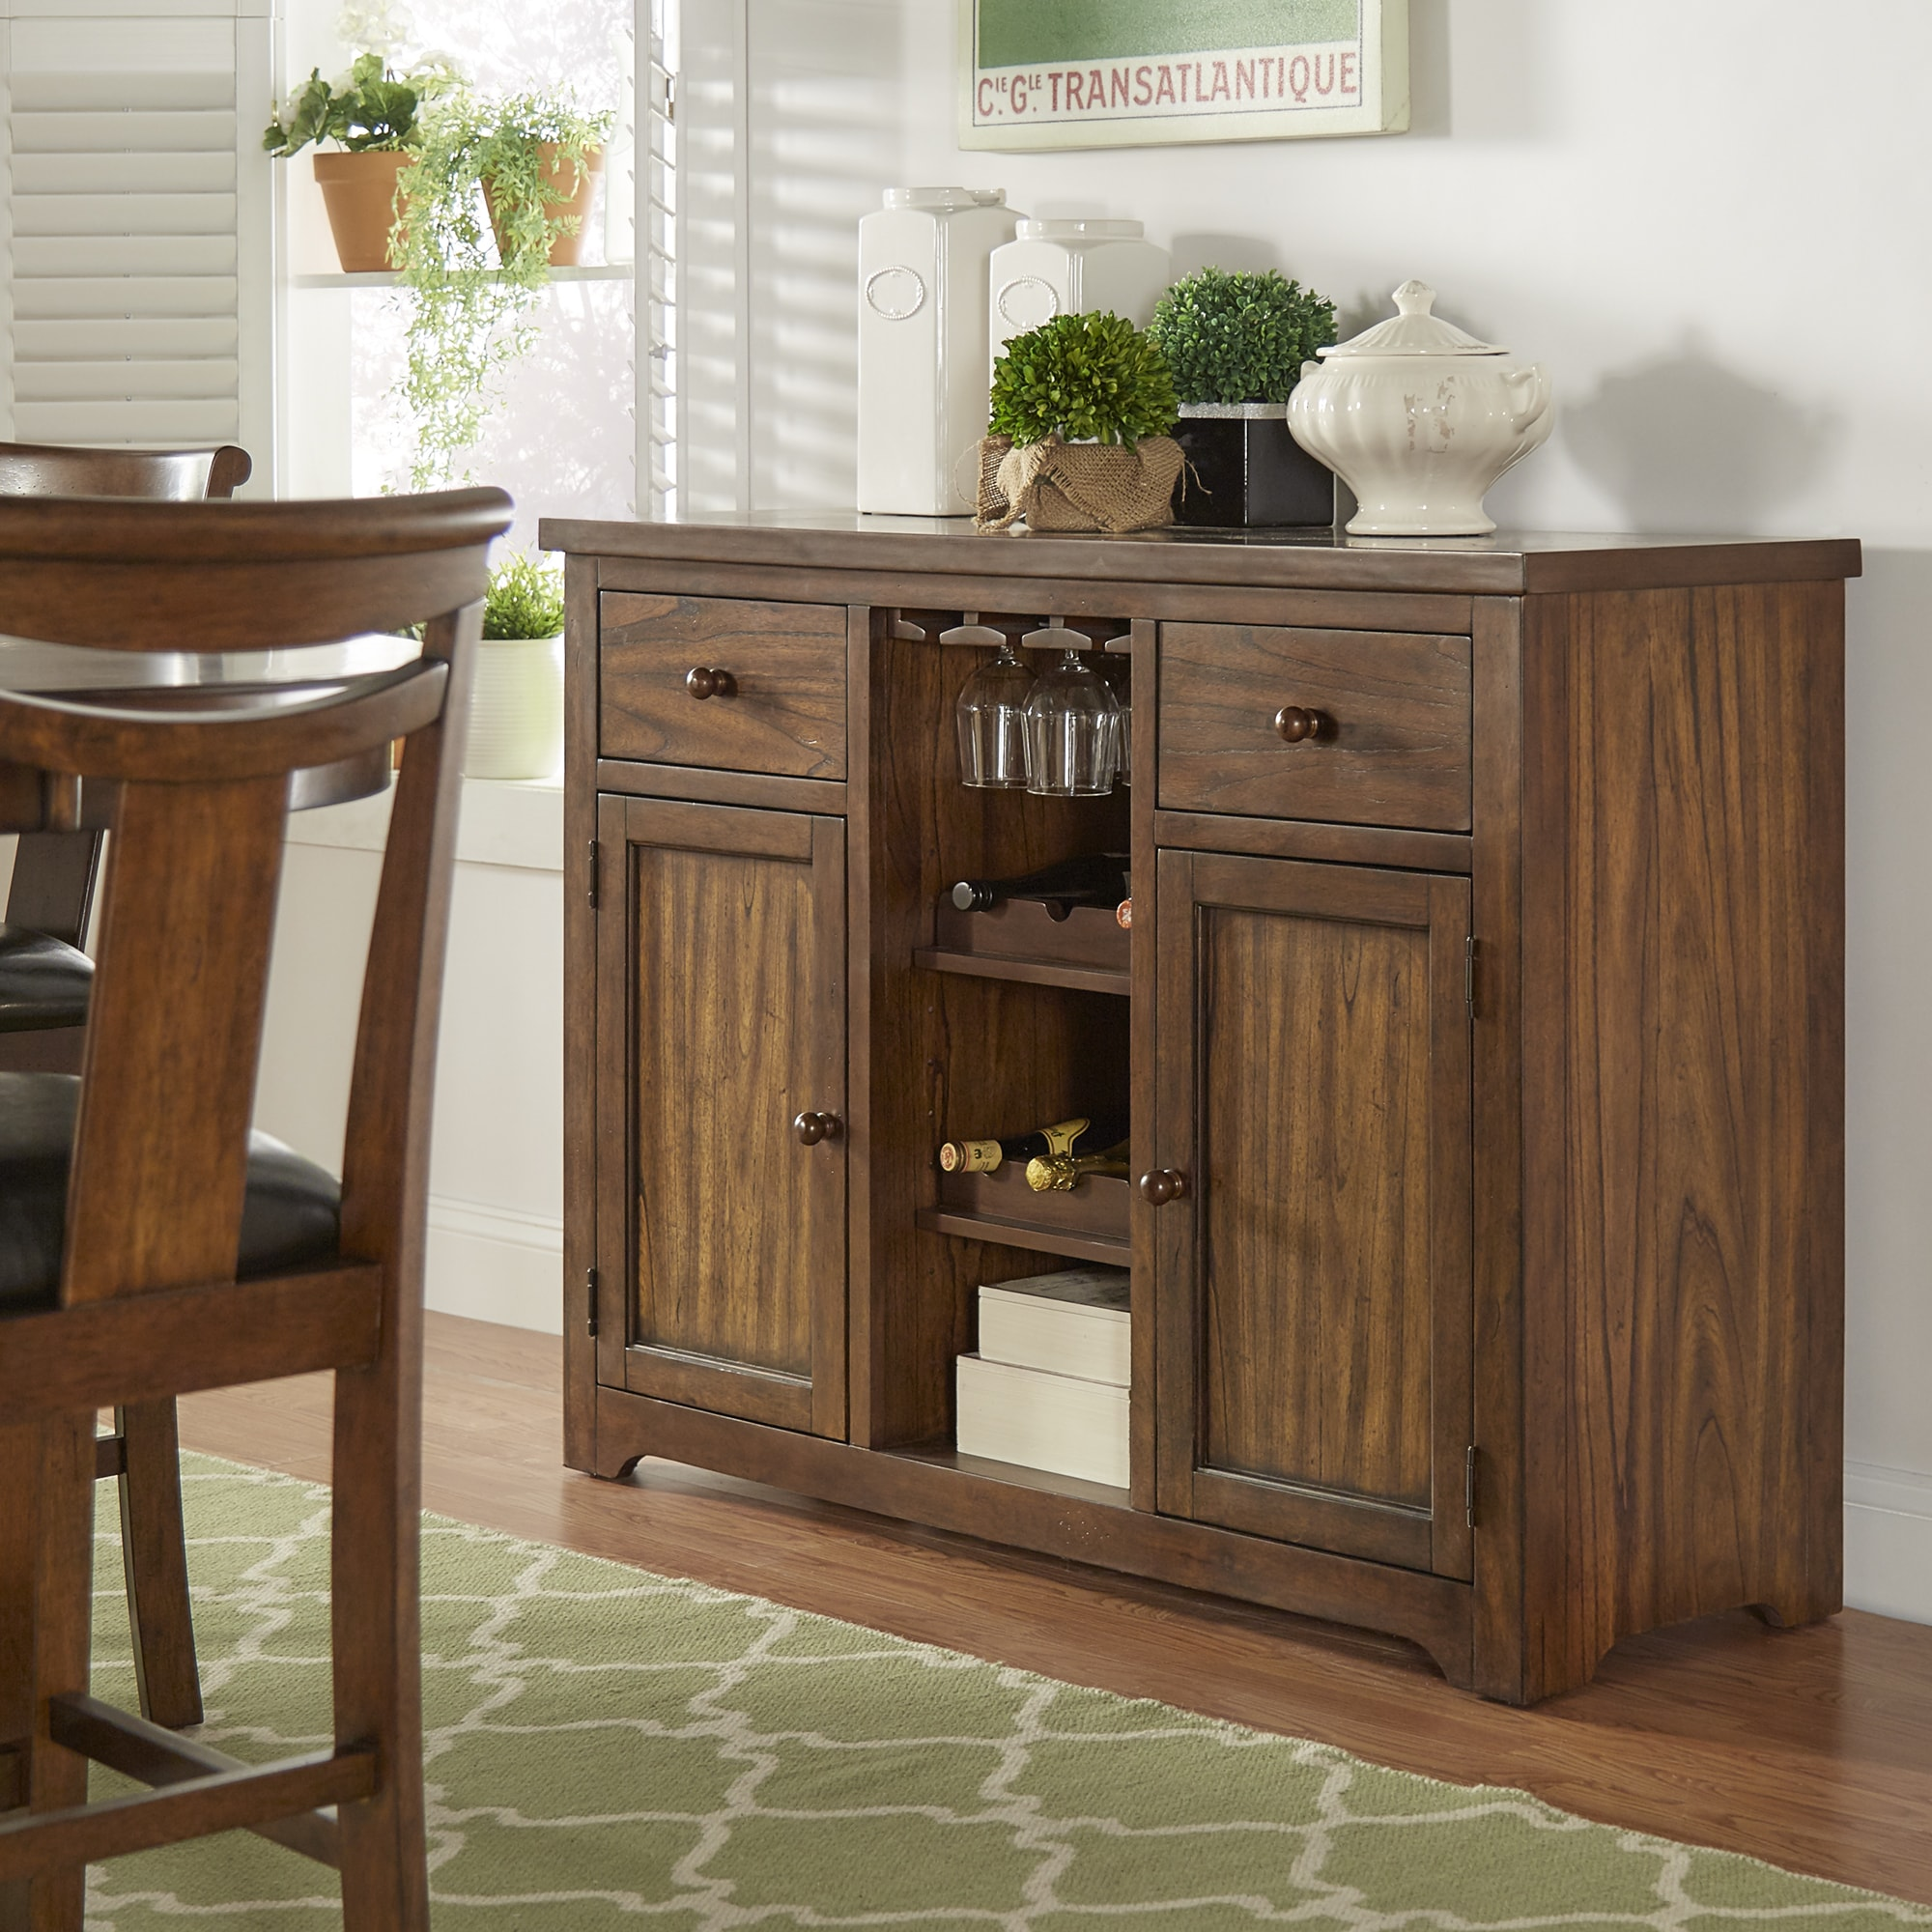 Tuscany Brown Wood Wine Rack Buffet Server by iNSPIRE Q C...